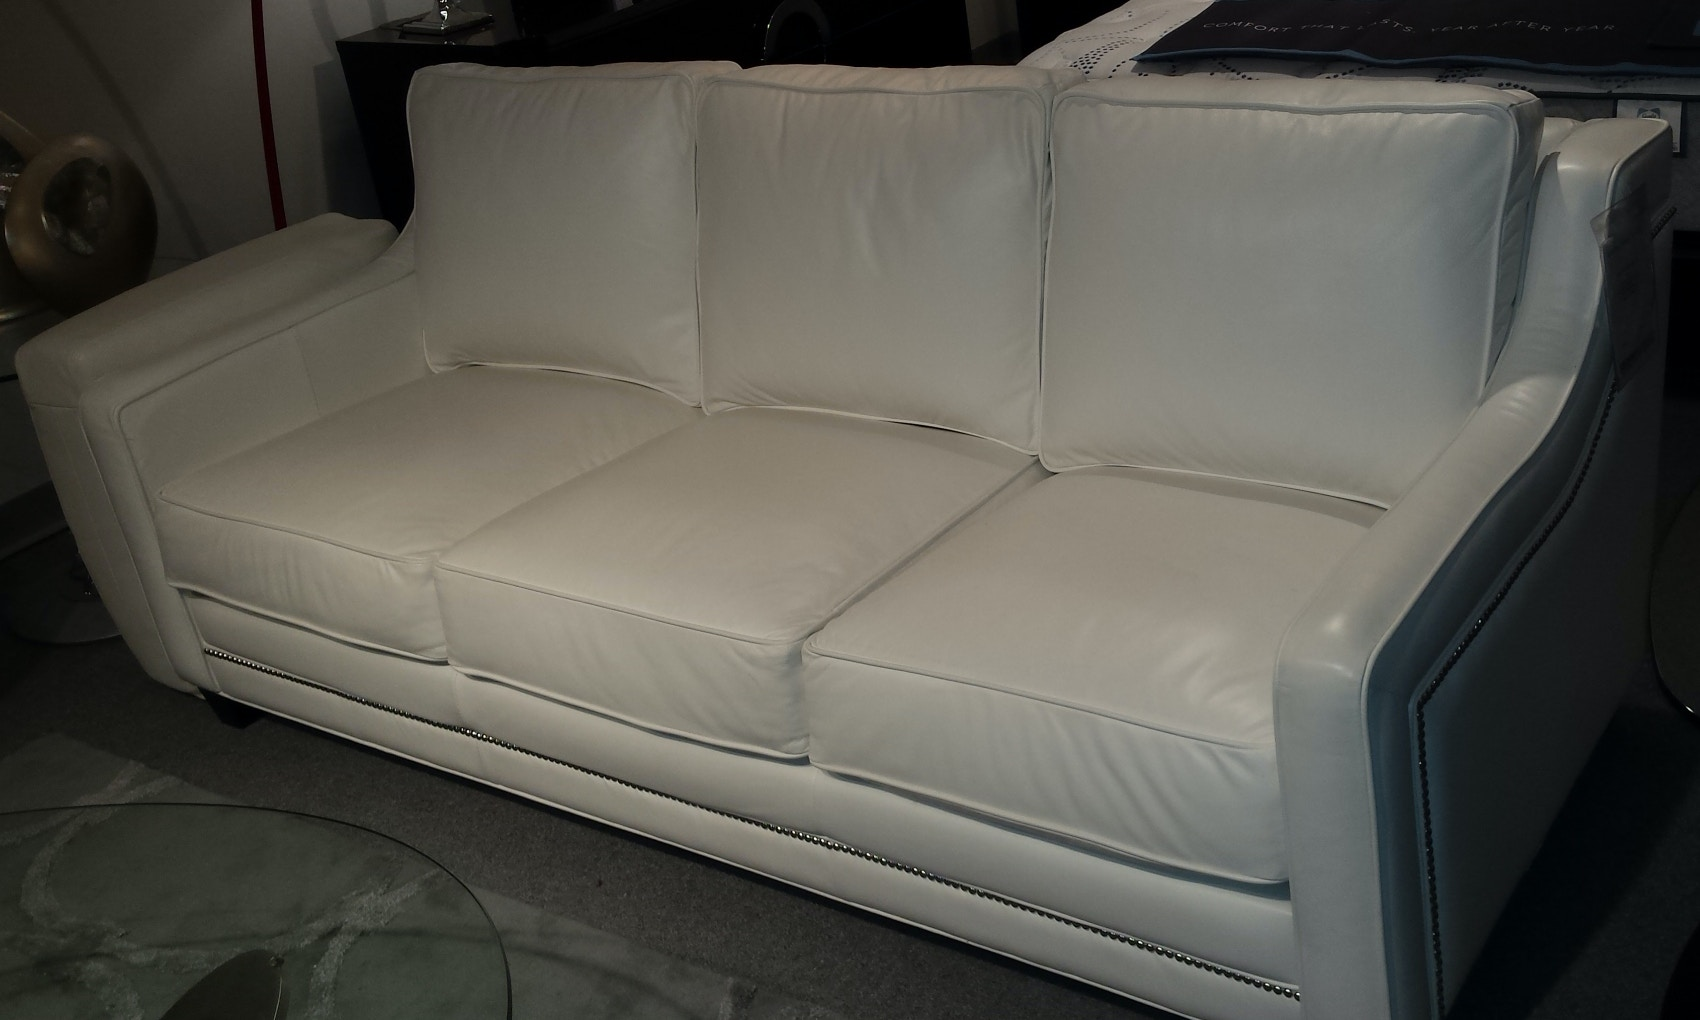 Omnia Leather 3 Seat Leather Sofa Fifth Avenue 3C SOFA 13001